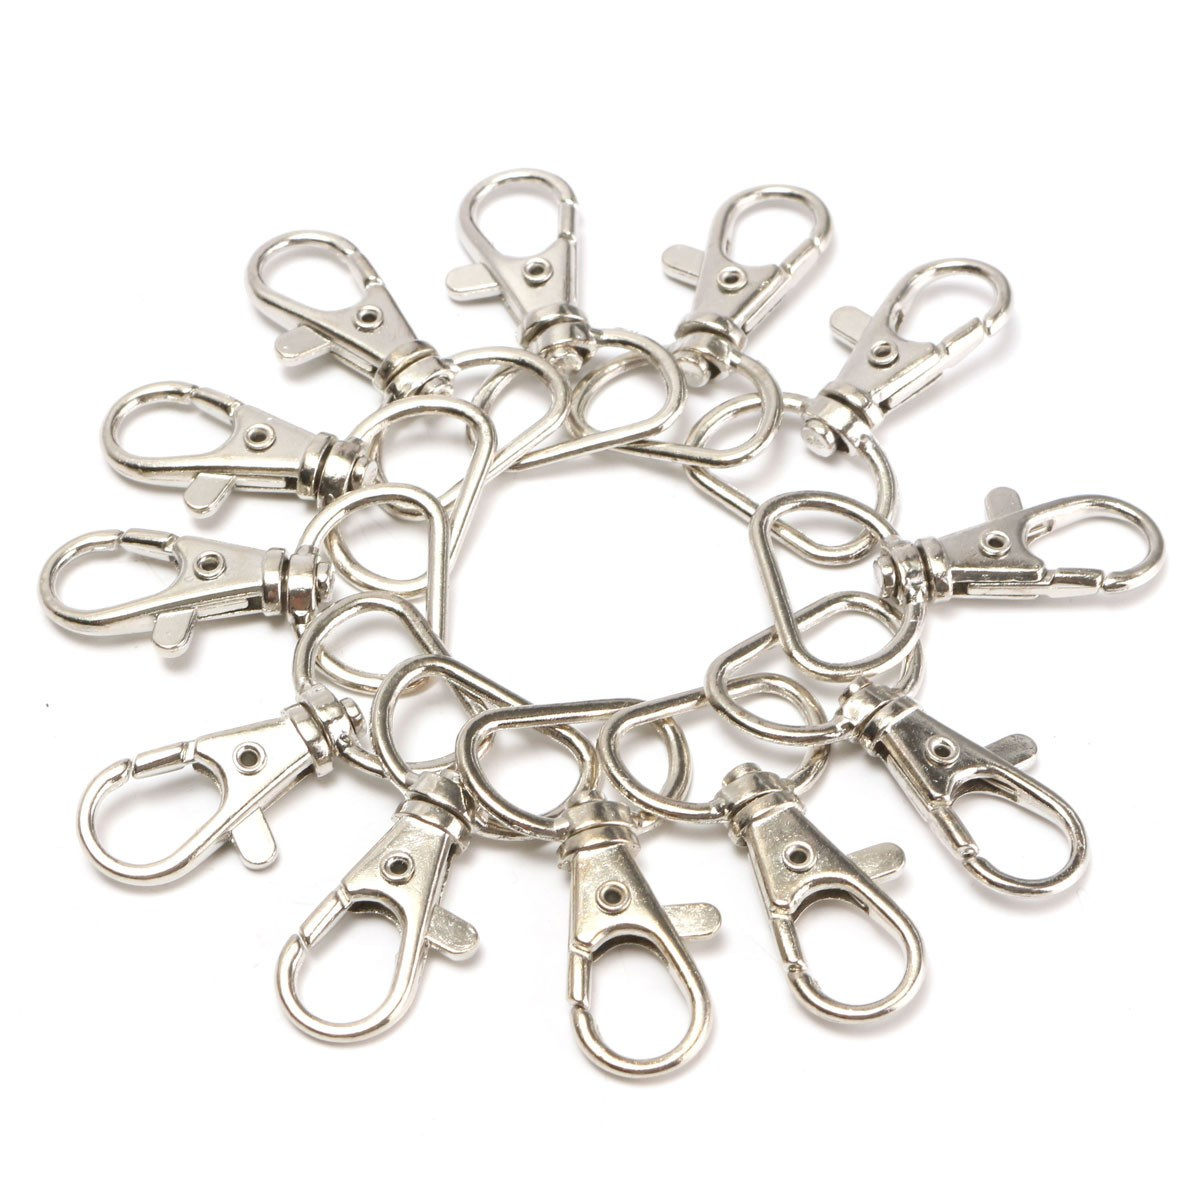 Bag Parts & Accessories 25pcs/packs Silver Metal Lanyard Swivel Snap Diy Handbag Hook Portable Lobster Clasp Clips Bag Accessories Wholesale Buckle Hook To Make One Feel At Ease And Energetic